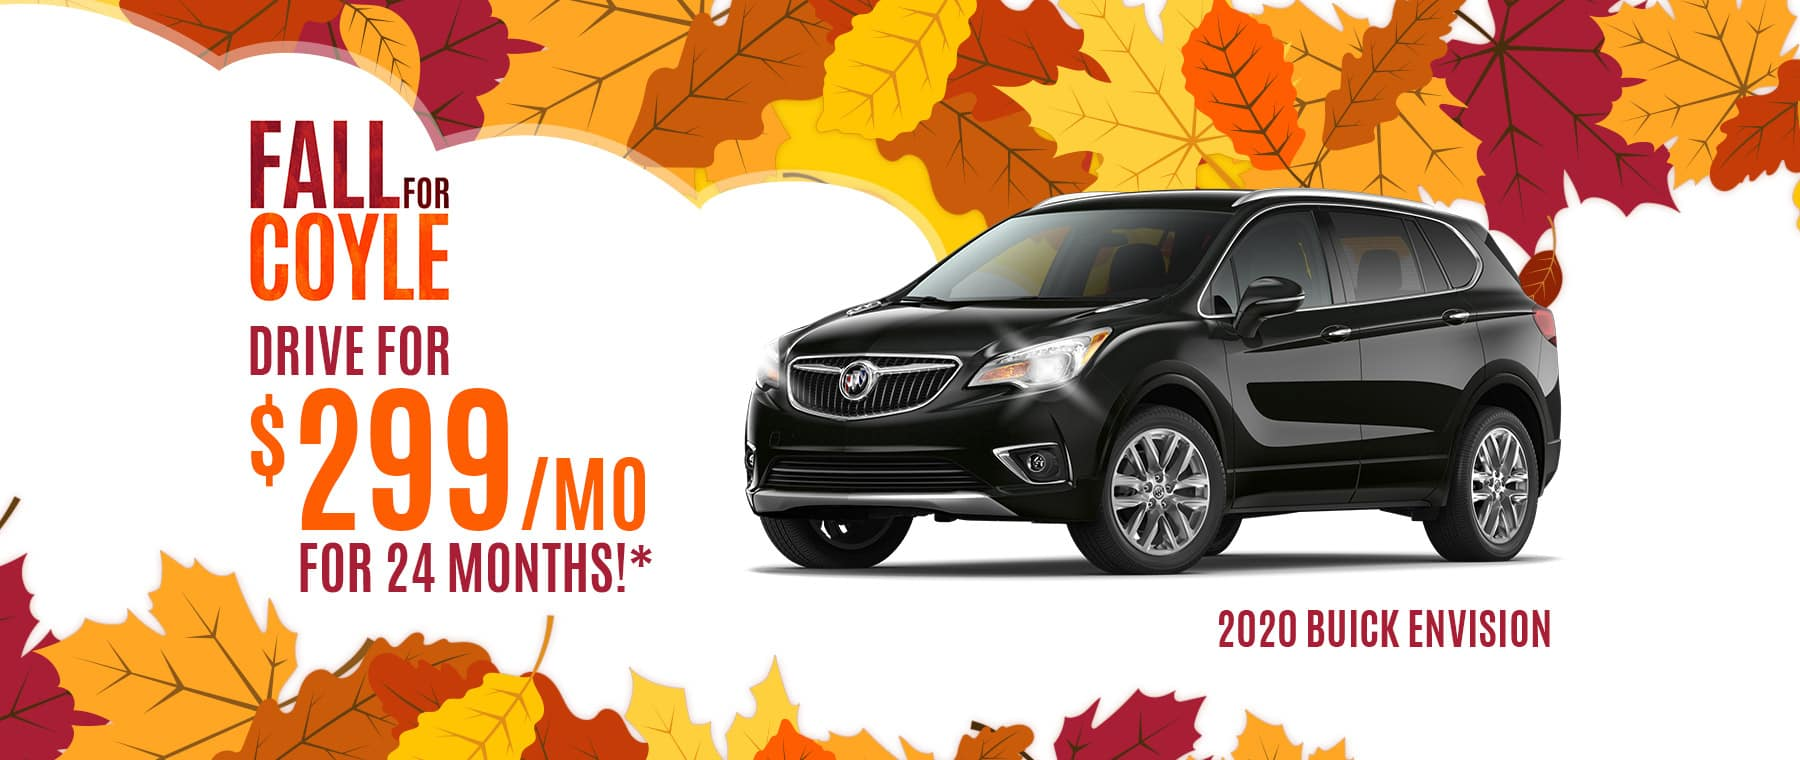 Lease a New Buick Envision near New Albany, Indiana